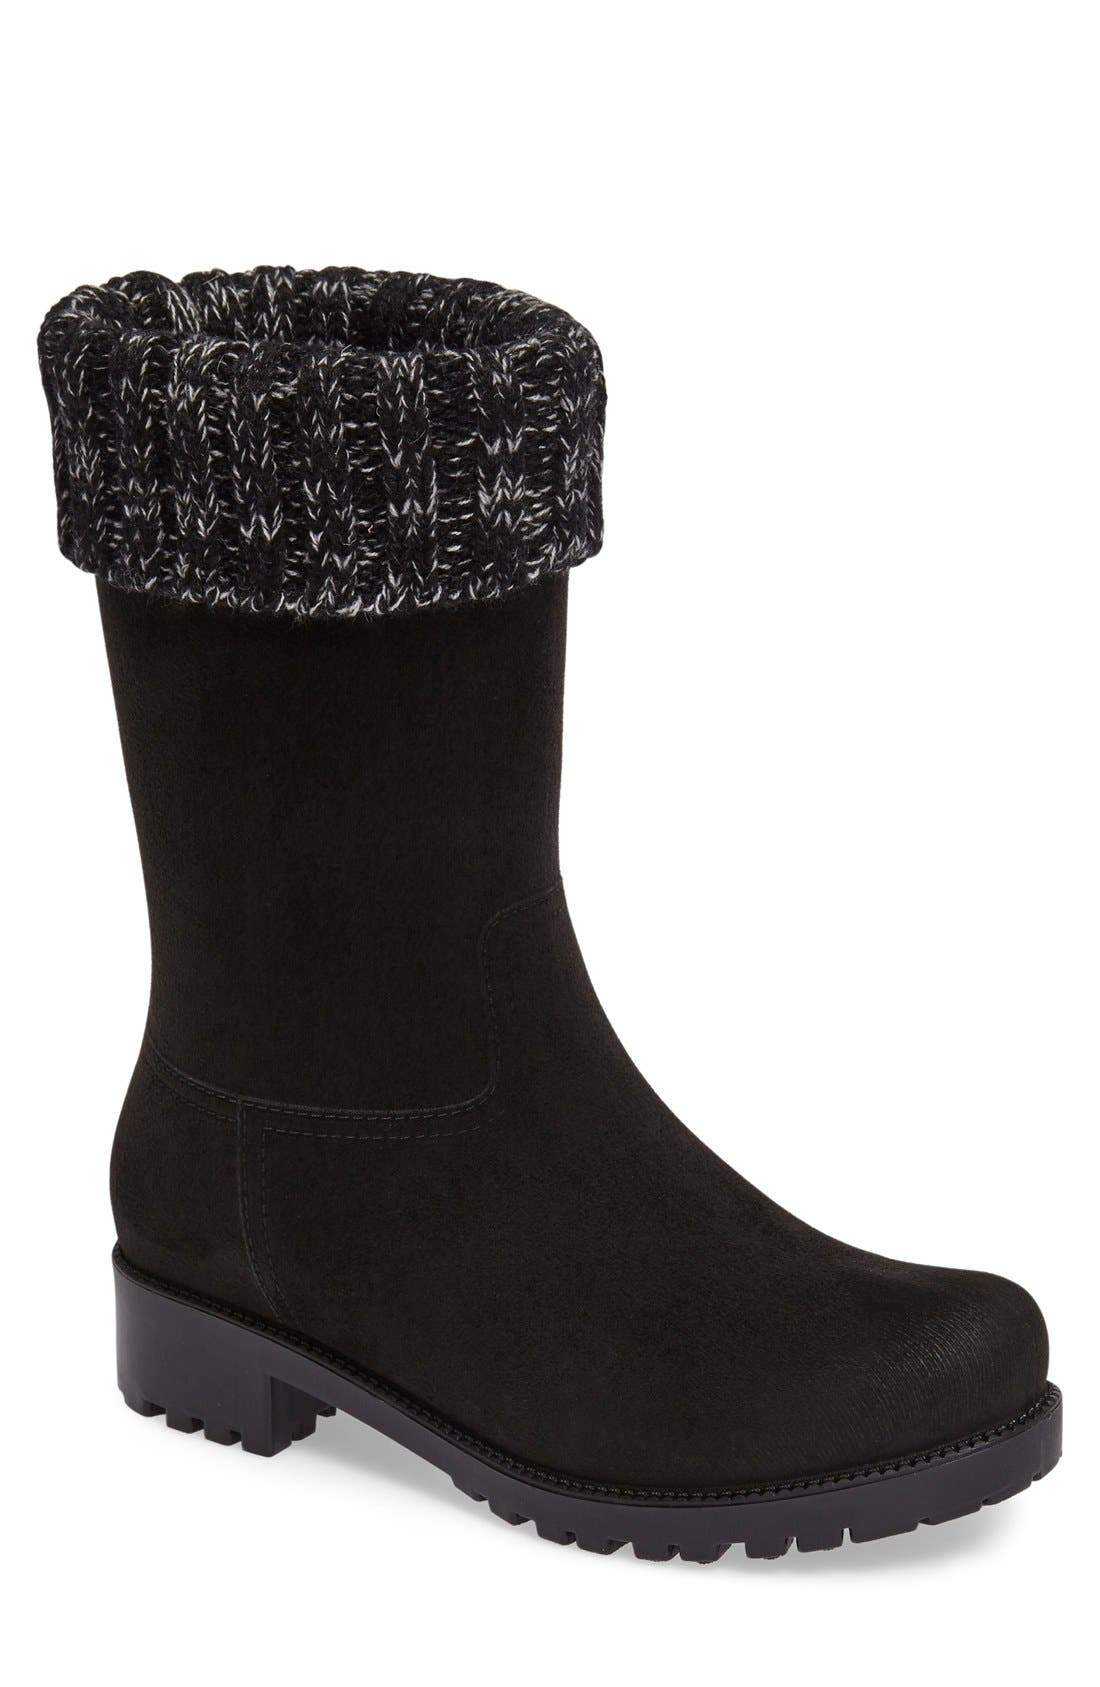 Shelby Knit Cuff Waterproof Boot,                             Main thumbnail 1, color,                             BLACK